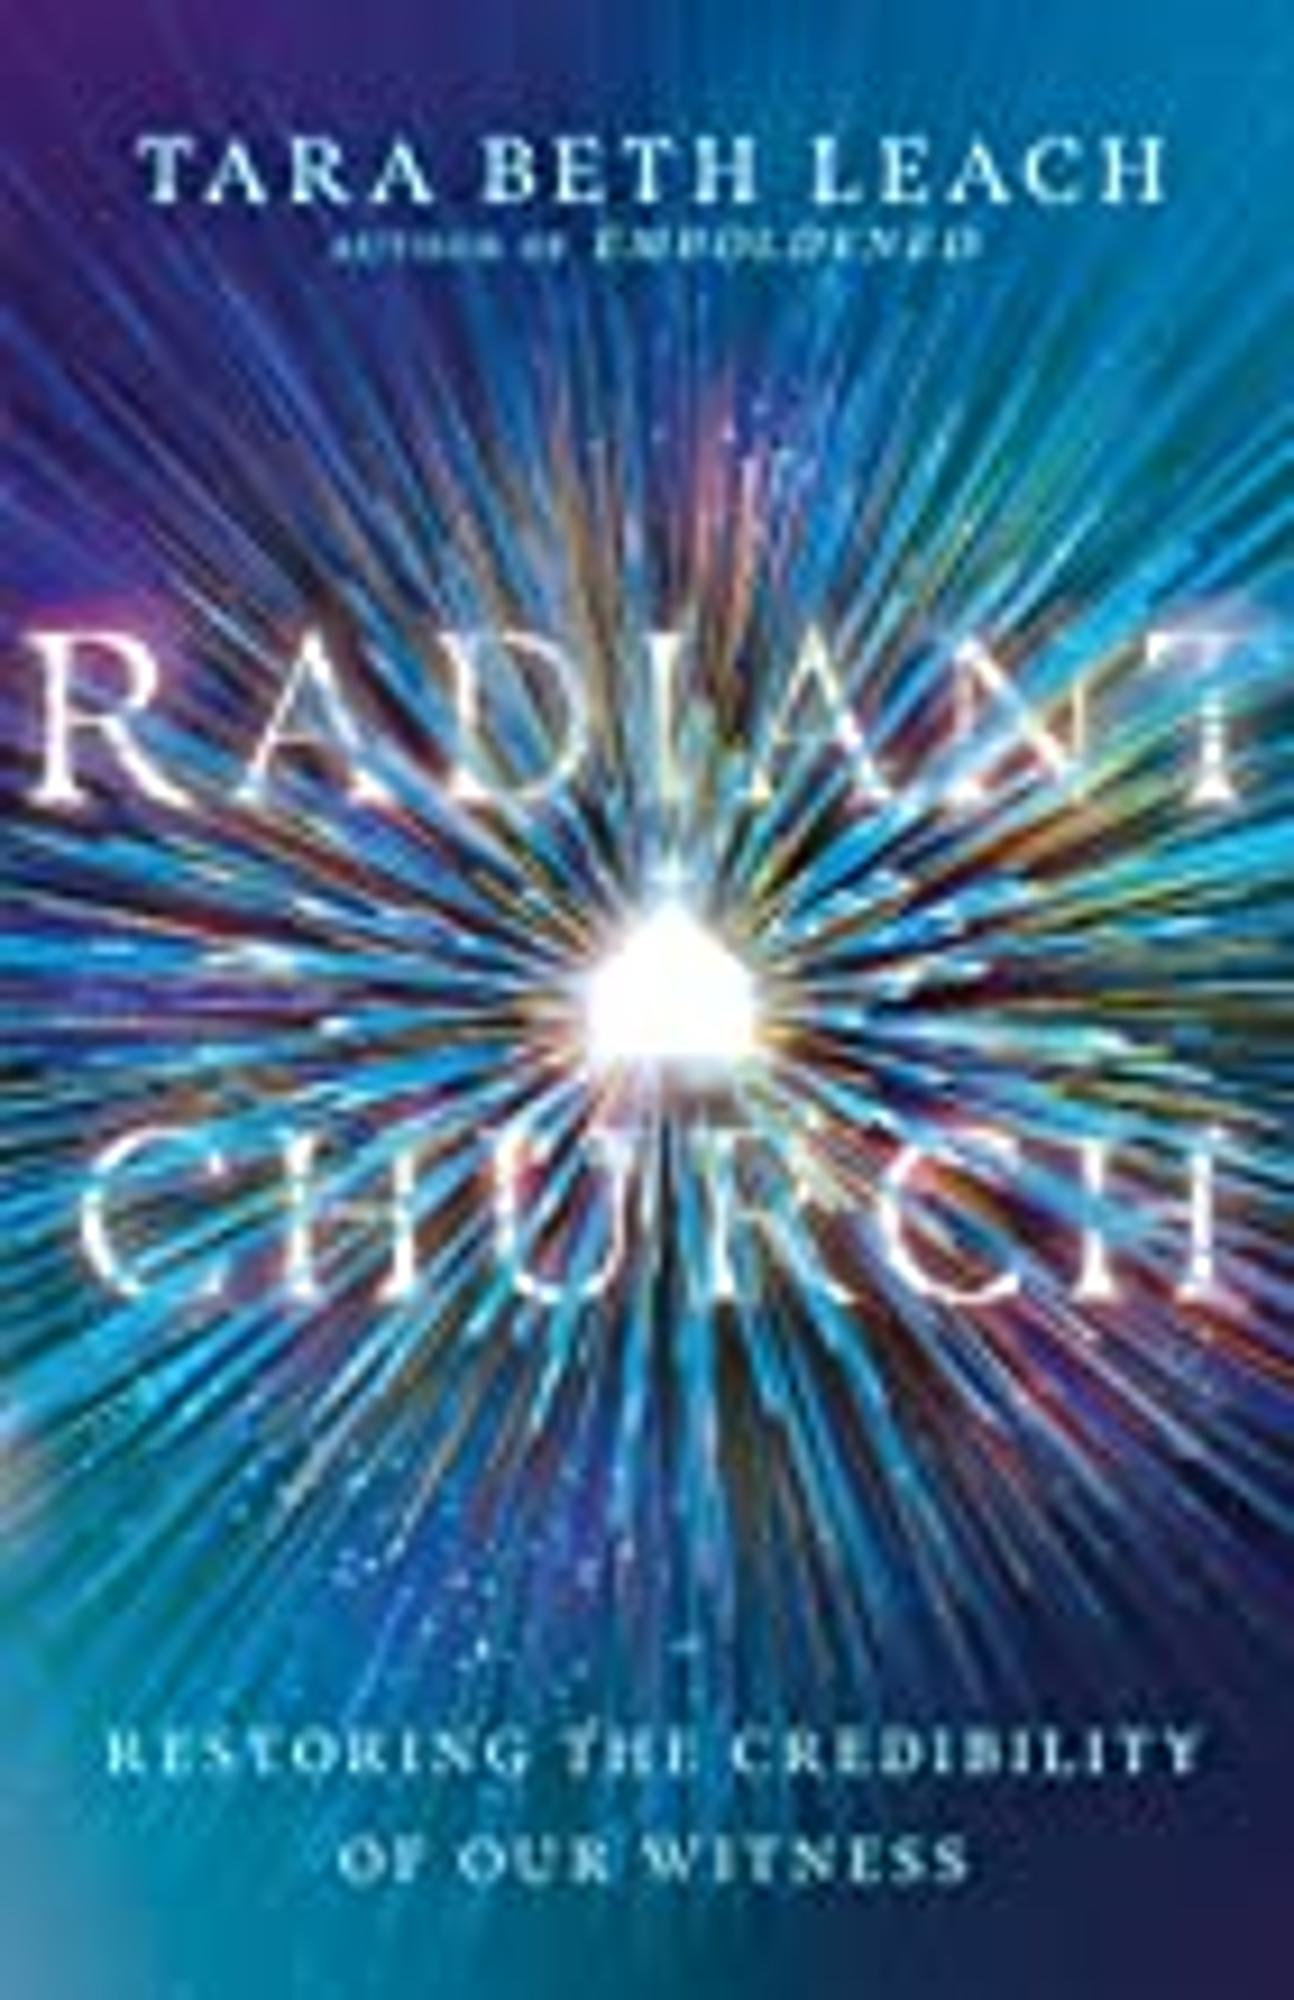 Cover image for Radiant Church: Restoring the Credibility of Our Witness